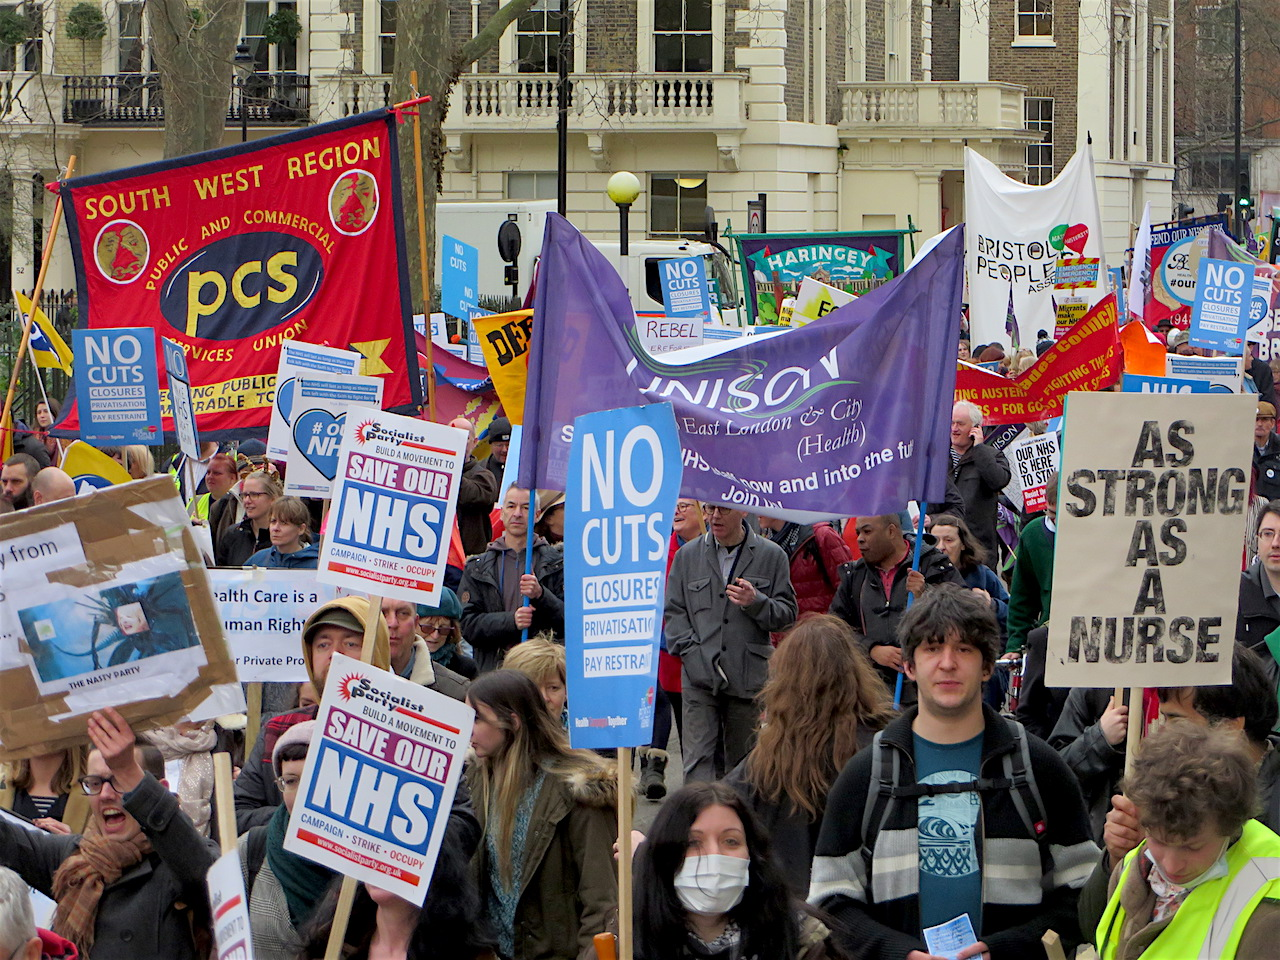 A photo from the march for the NHS on March 4, 2017 (Photo: Andy Worthington).